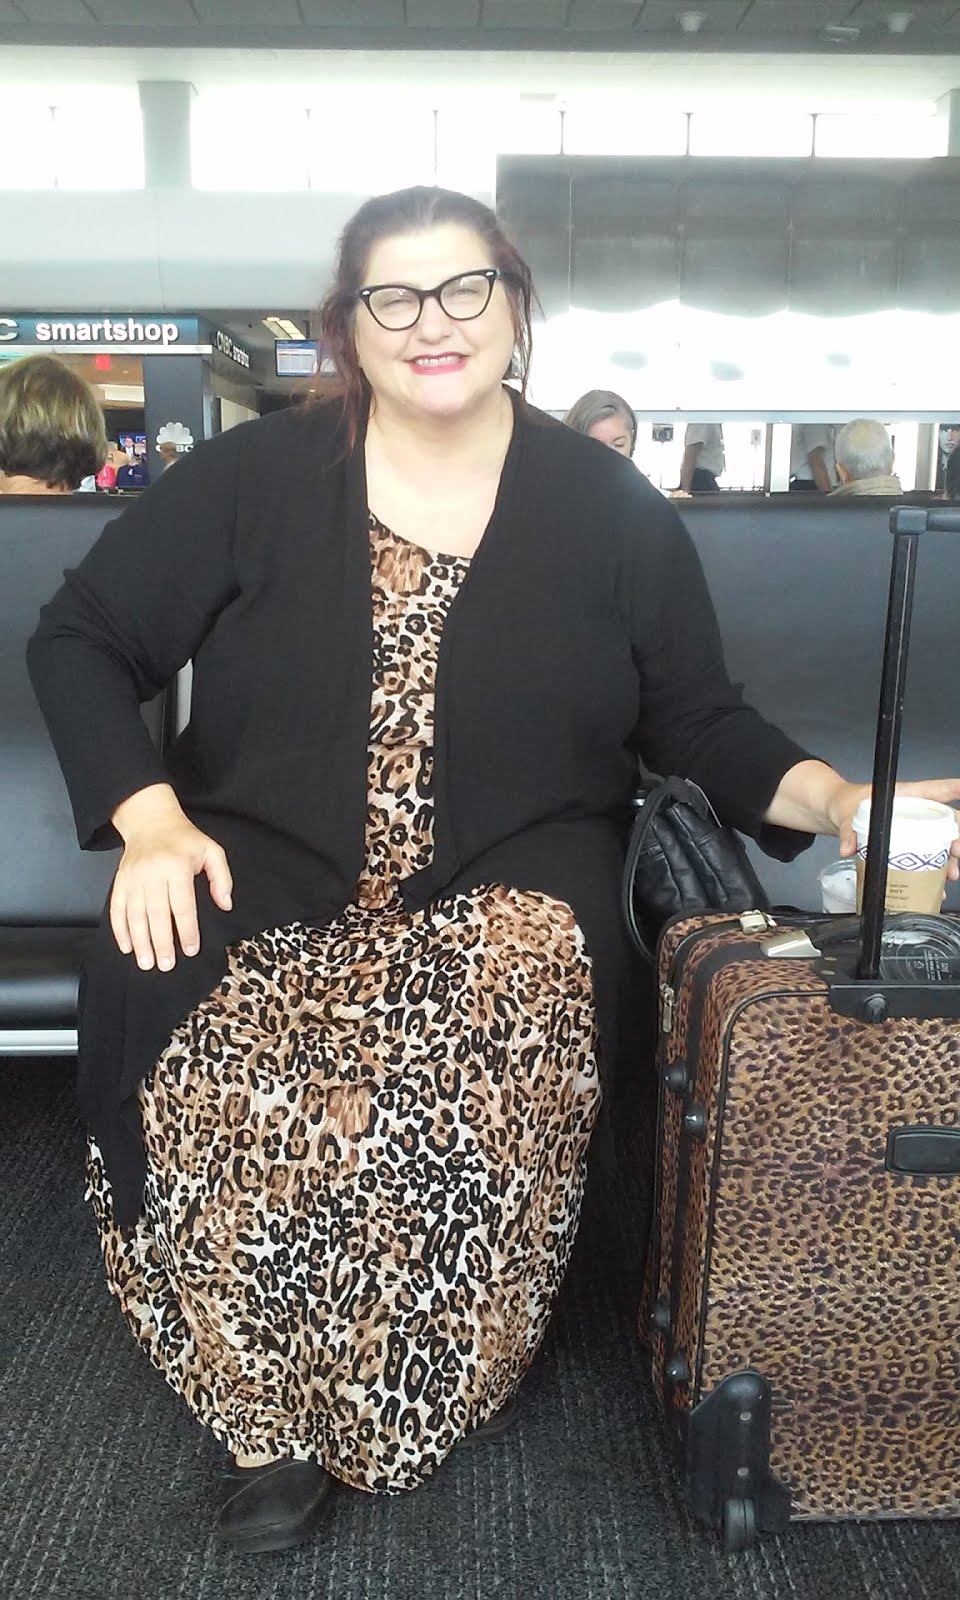 5/28/15 ~ Photo taken at SFO airport on the day before my VSG surgery.